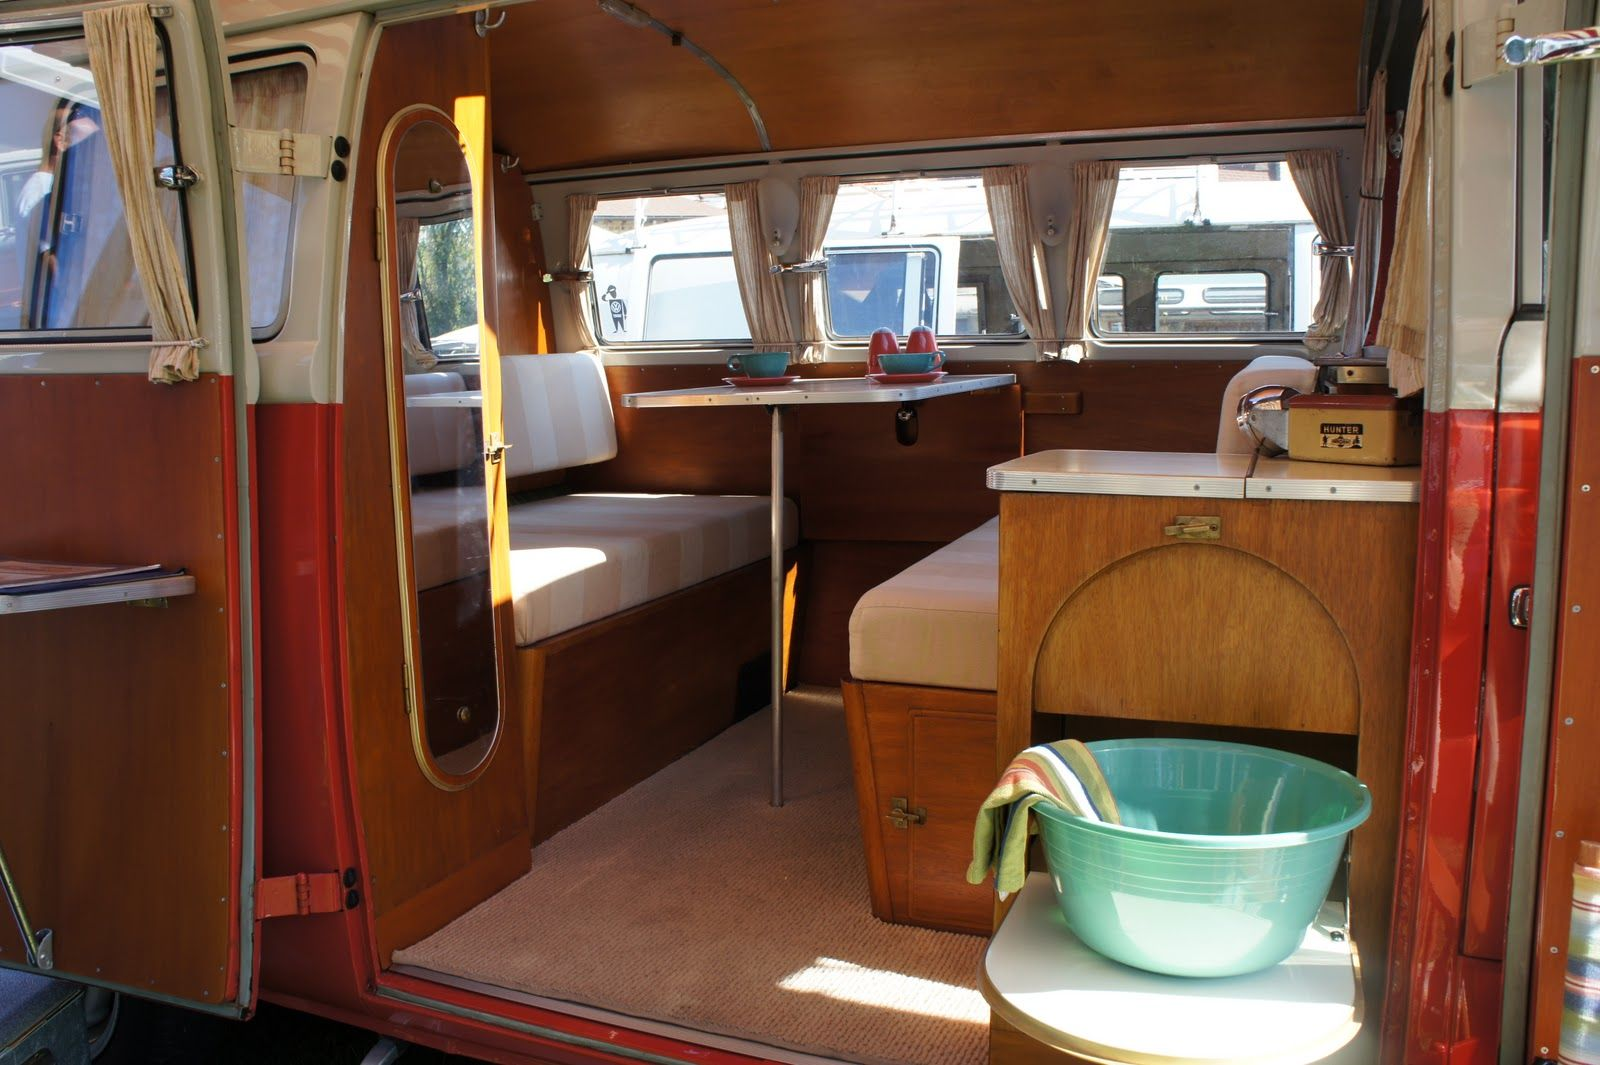 Vw interior ideas on pinterest vw camper vans campervan for Vw kombi interior designs